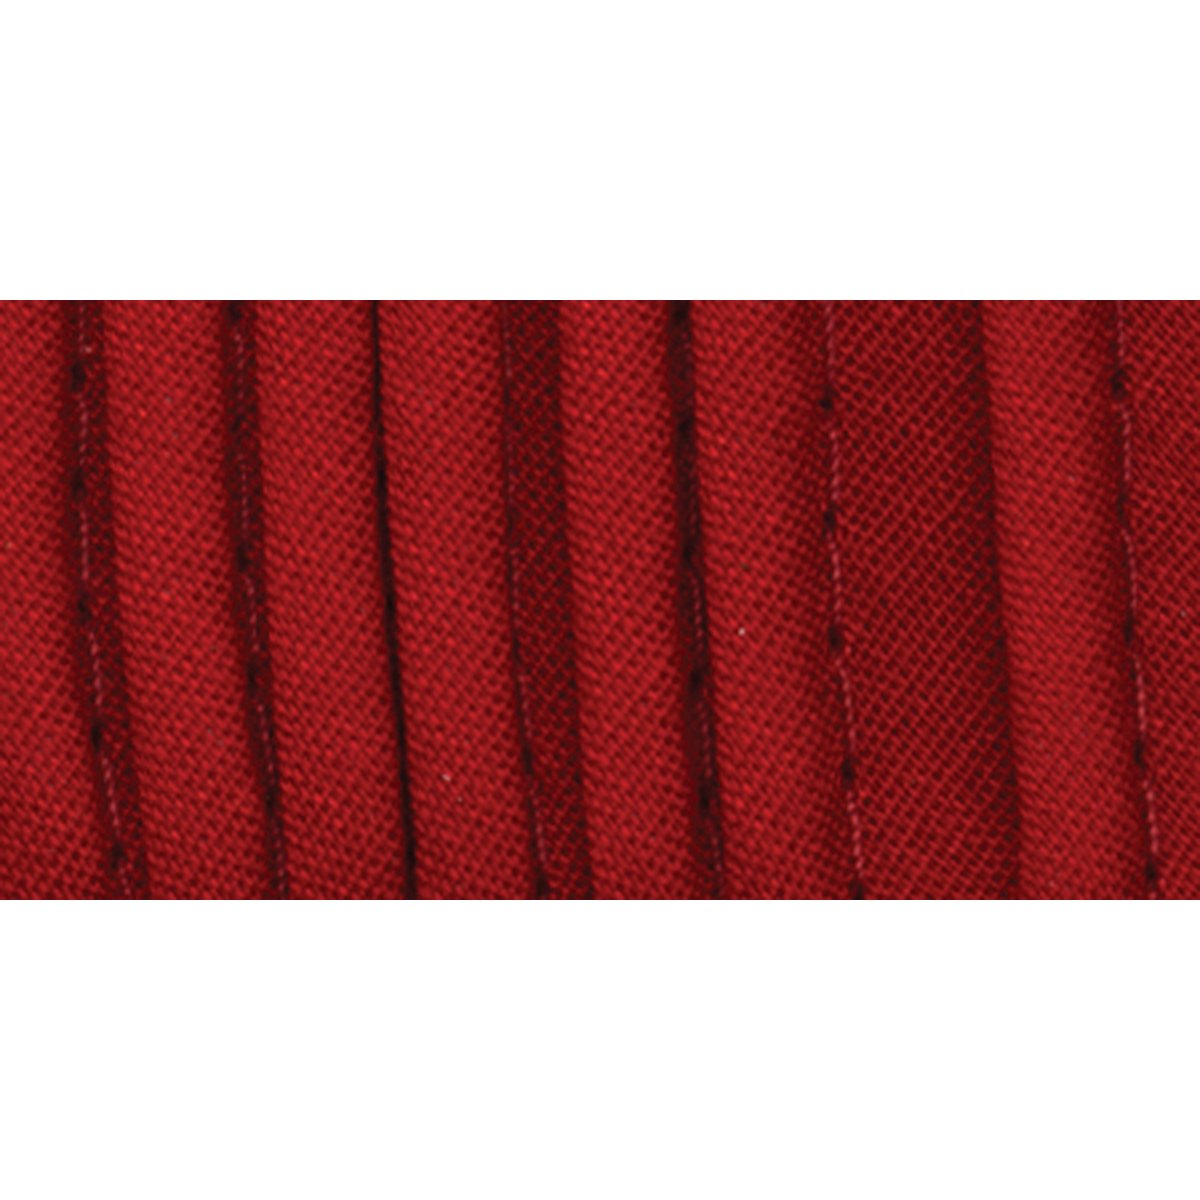 Wrights 117-303-087 Maxi Piping Bias Tape, Brick, 2.5-Yard Notions - In Network